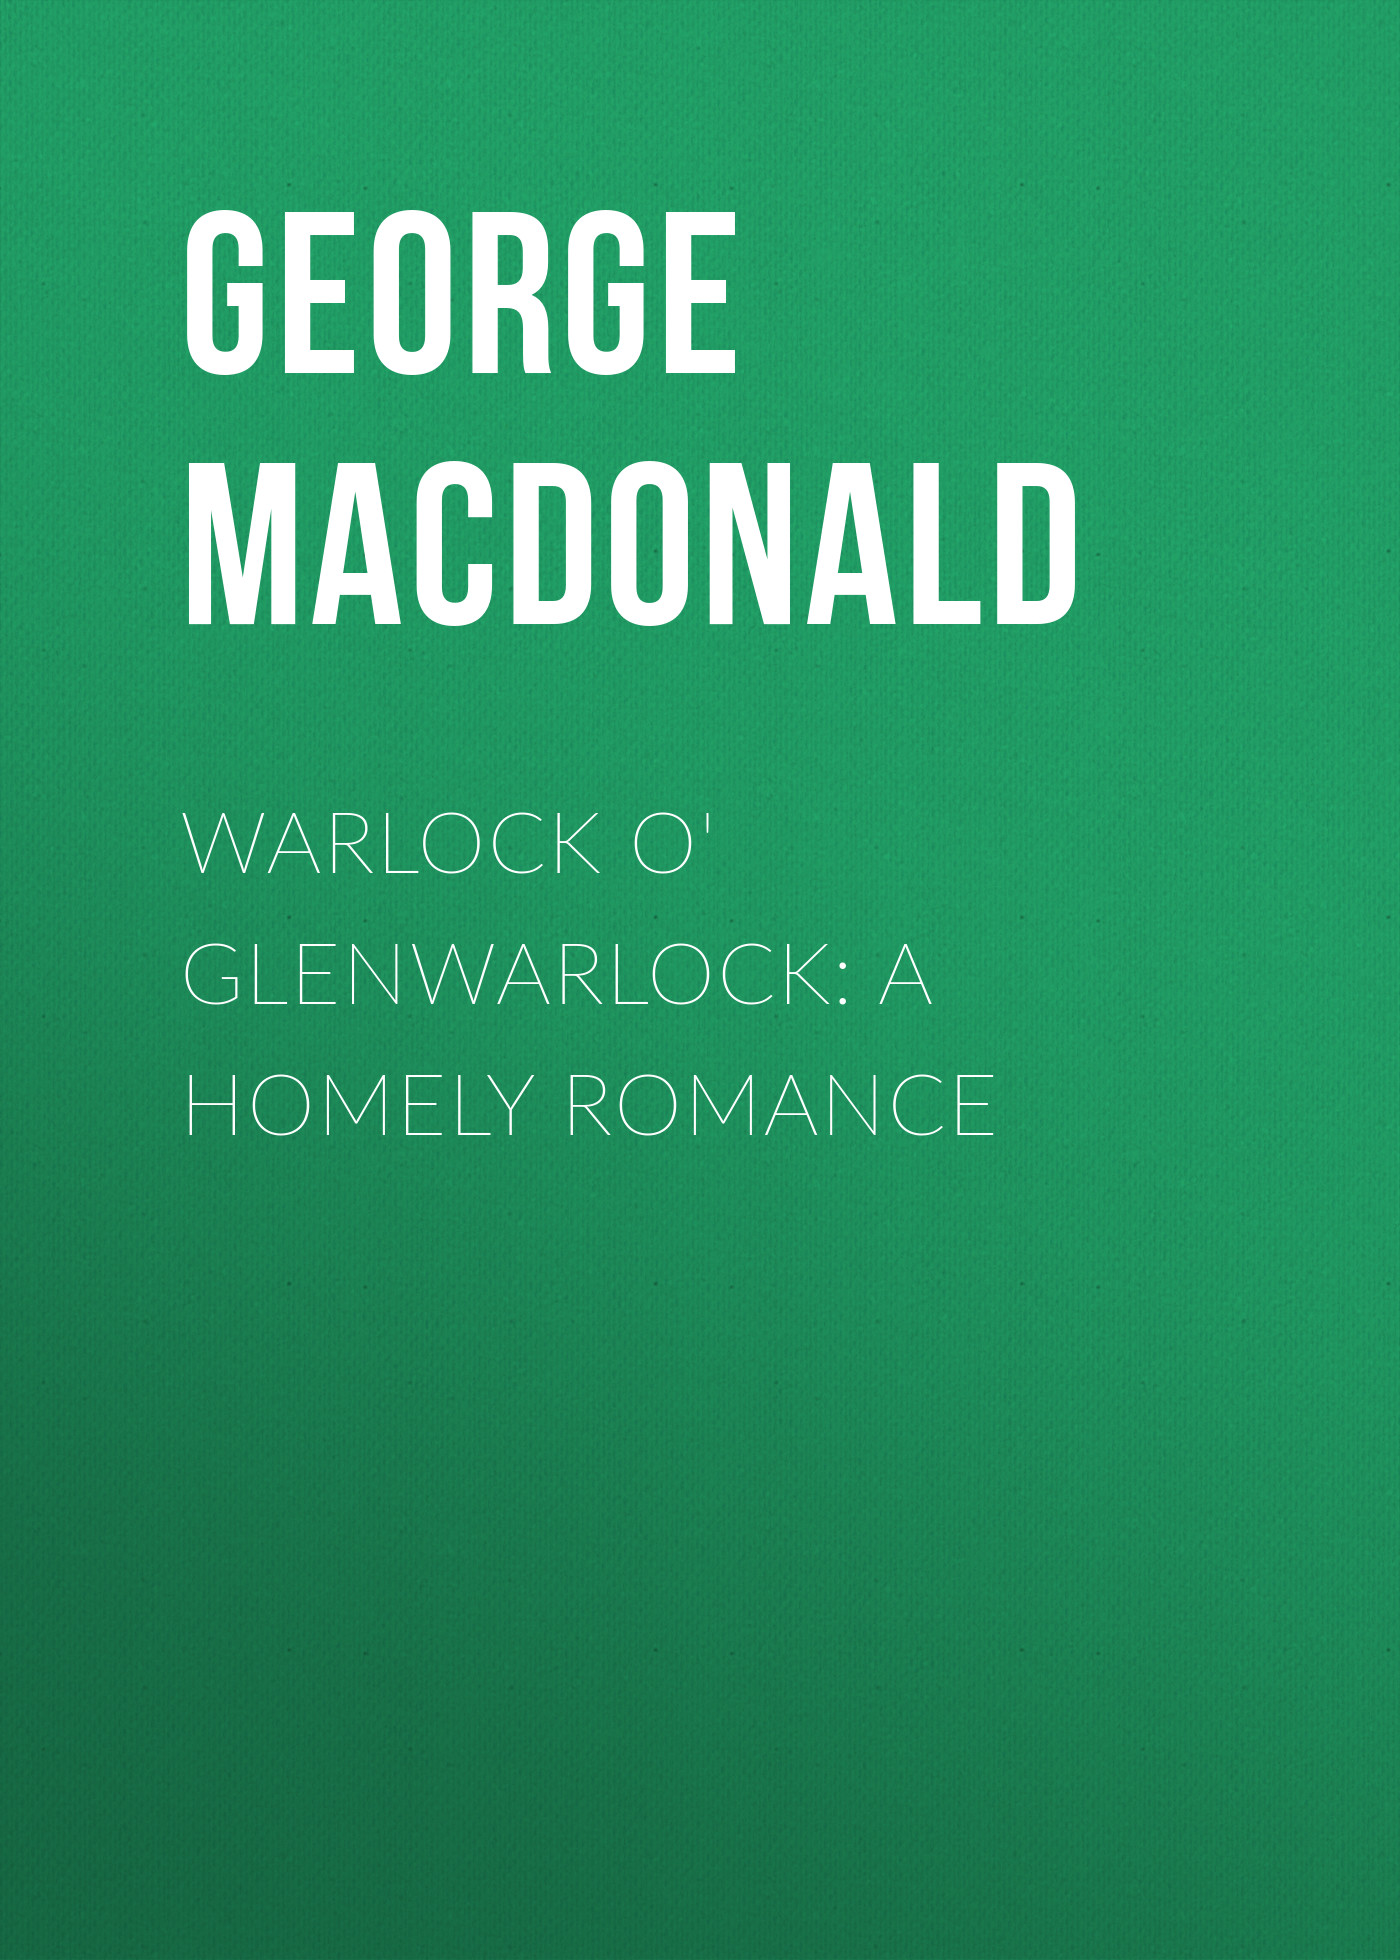 George MacDonald Warlock o' Glenwarlock: A Homely Romance george macdonald a rough shaking